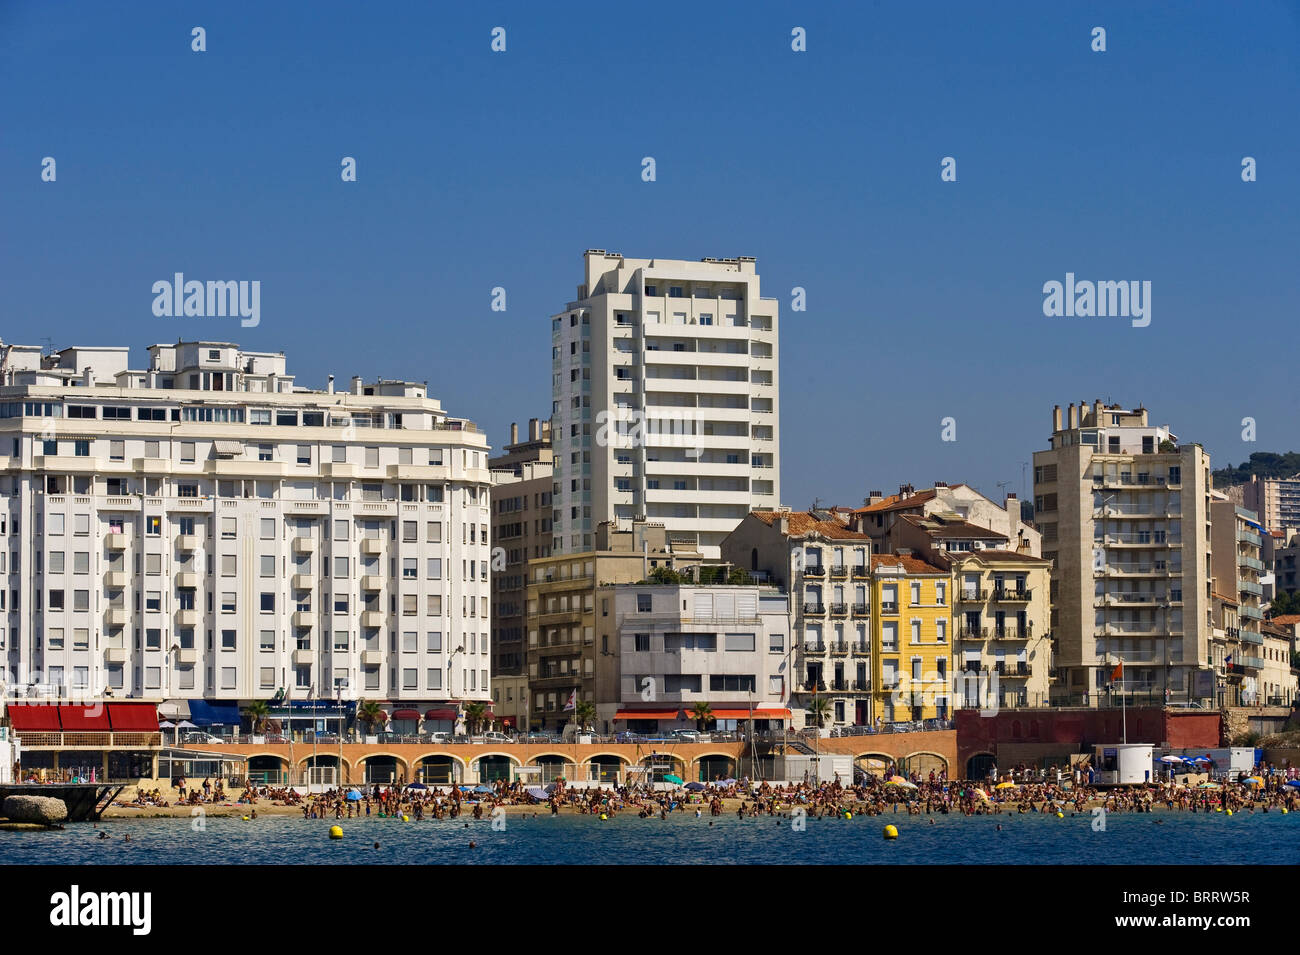 Beach in front of multistory buildings in Marseille, Provence Cote d' Azur, France - Stock Image